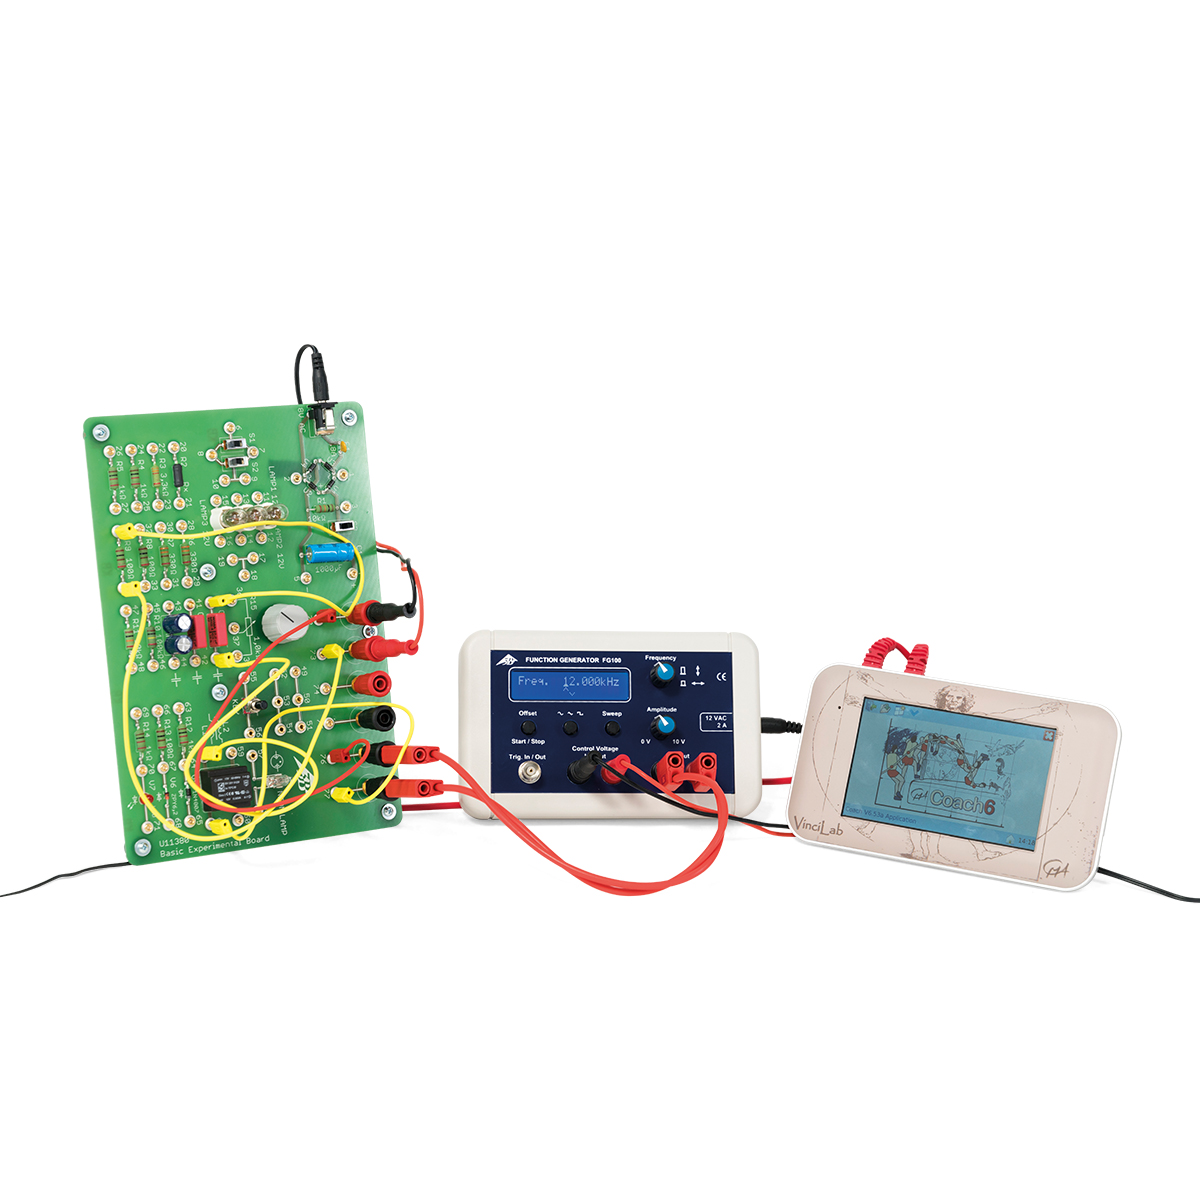 Experiment Lc Resonant Circuits 115 V 50 60 Hz 8000651 Dc Or Direct Current And Ac Alternating In A